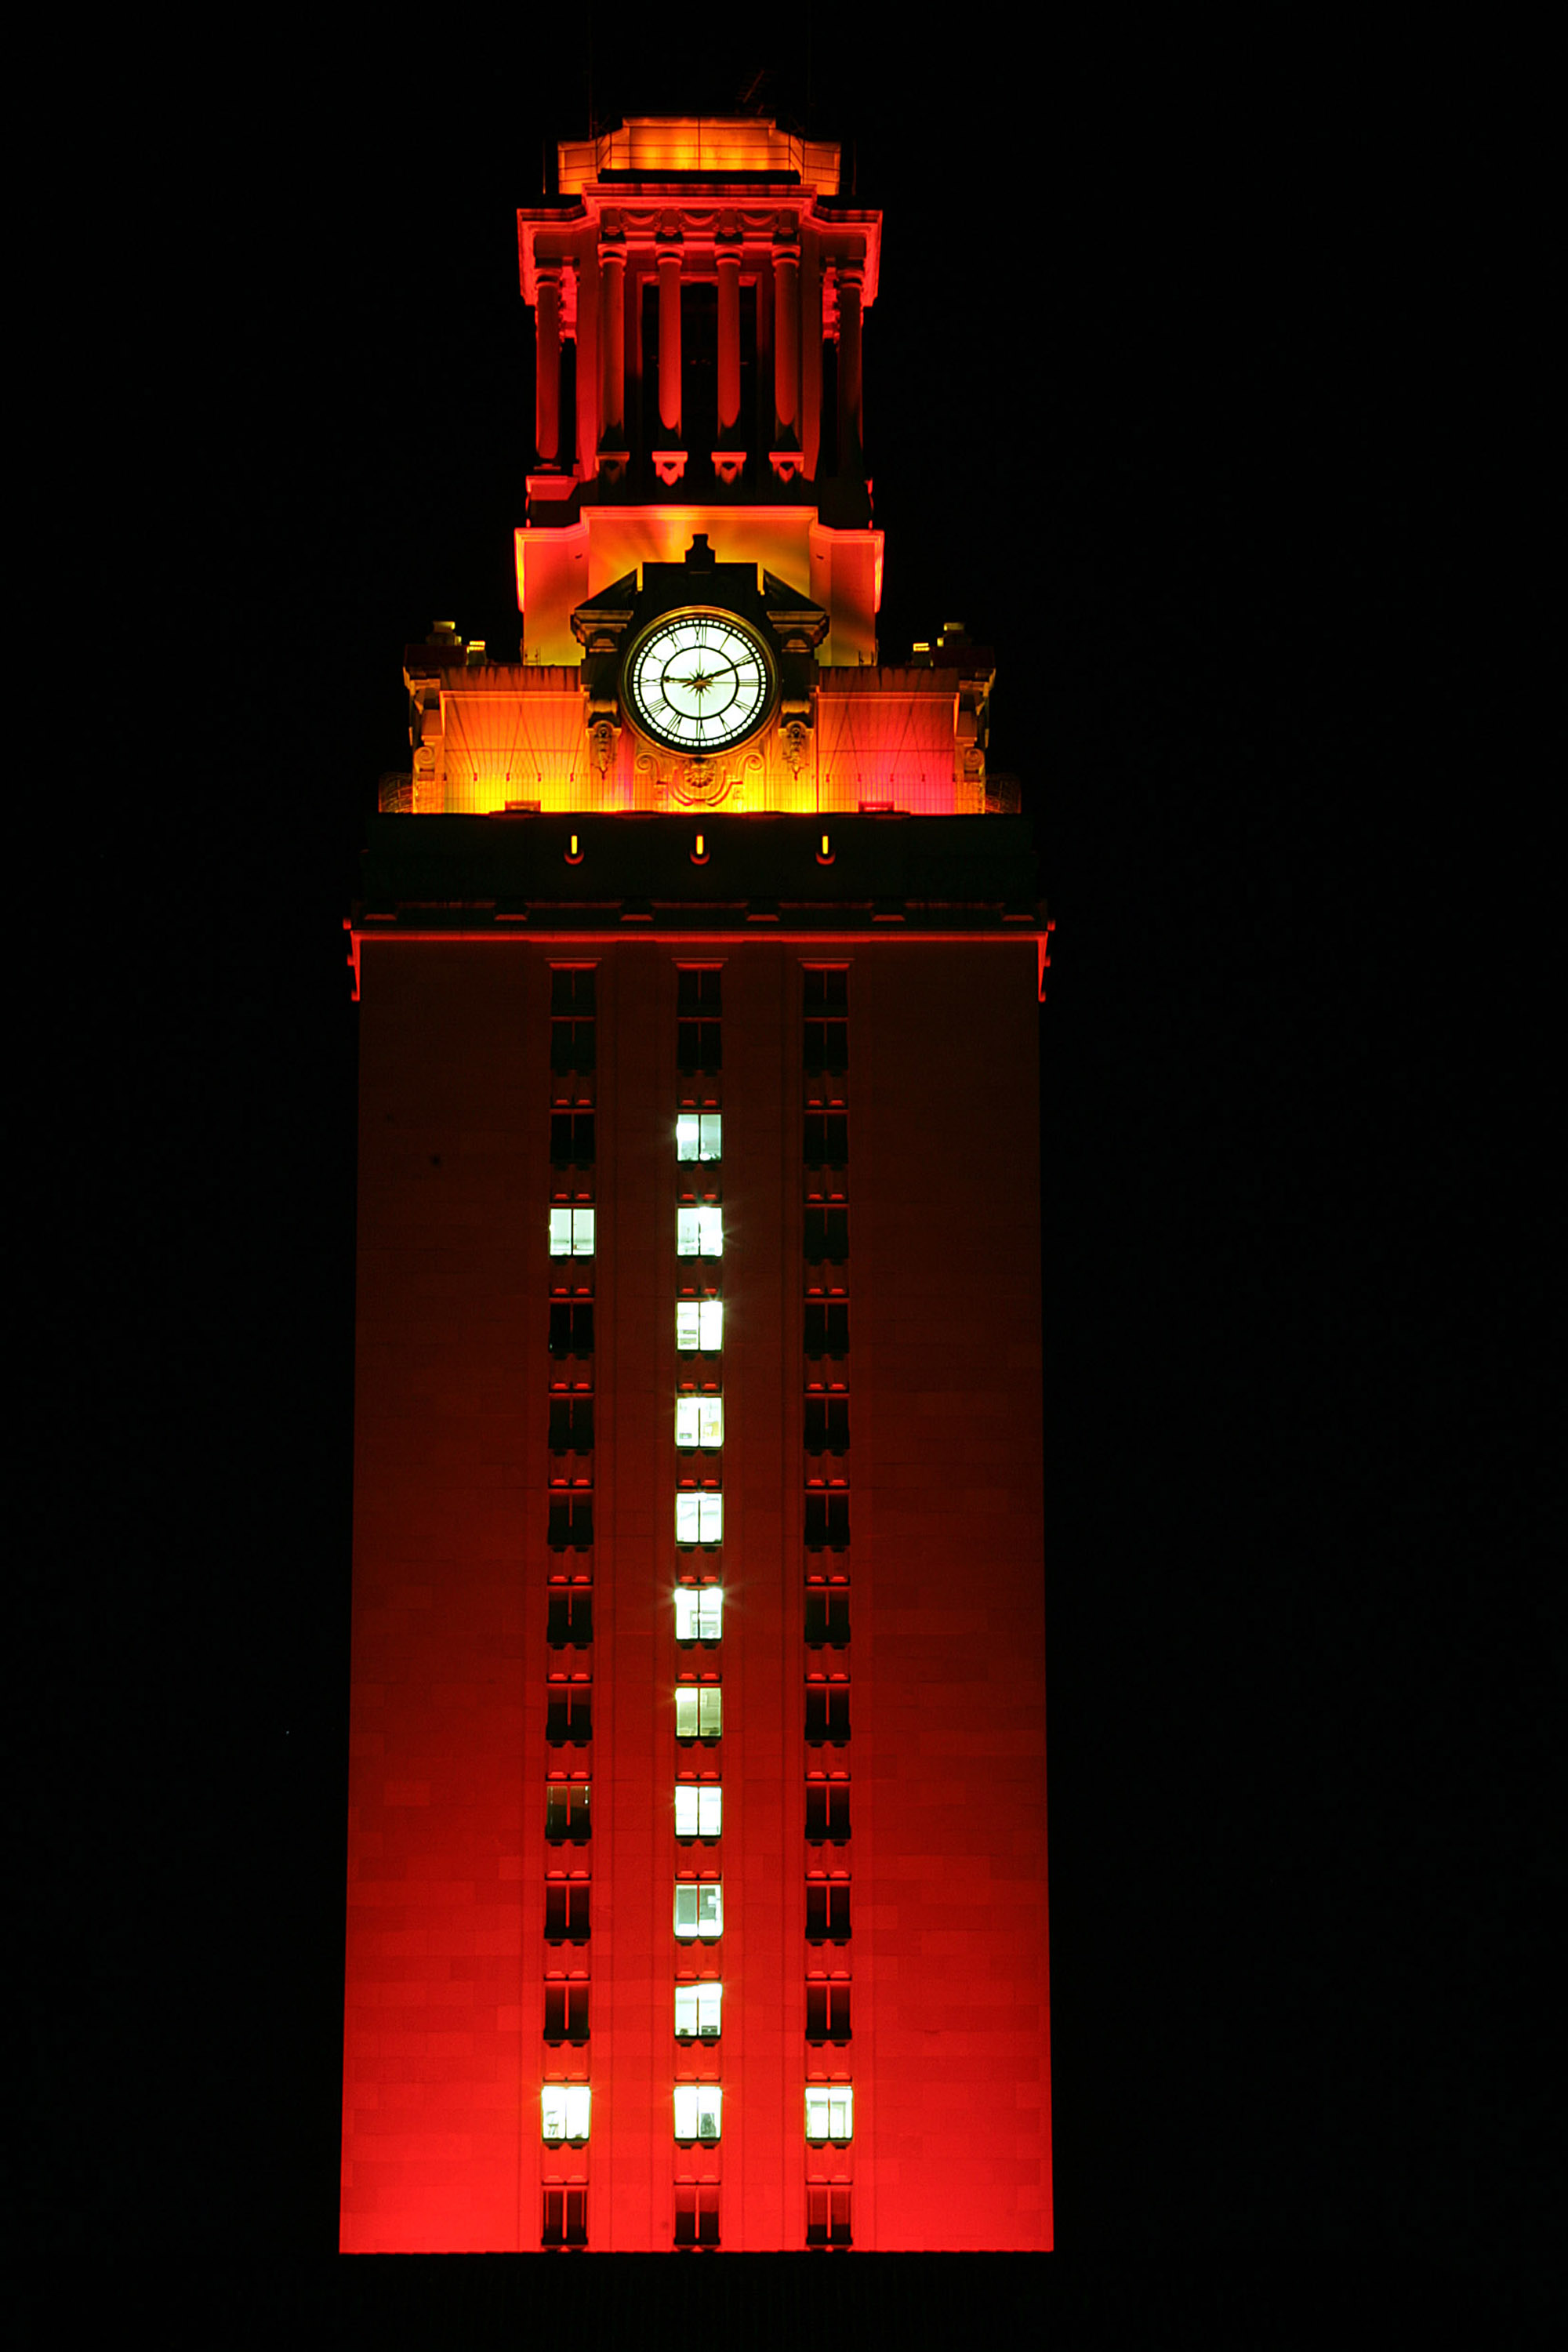 AUSTIN, TX - JANUARY 7:  The University of Texas Tower is lit burnt orange with a number 1 in recognition of the Texas Longhorns national college football championship on January 7, 2006 in Austin, Texas.  (Photo by Ronald Martinez/Getty Images)